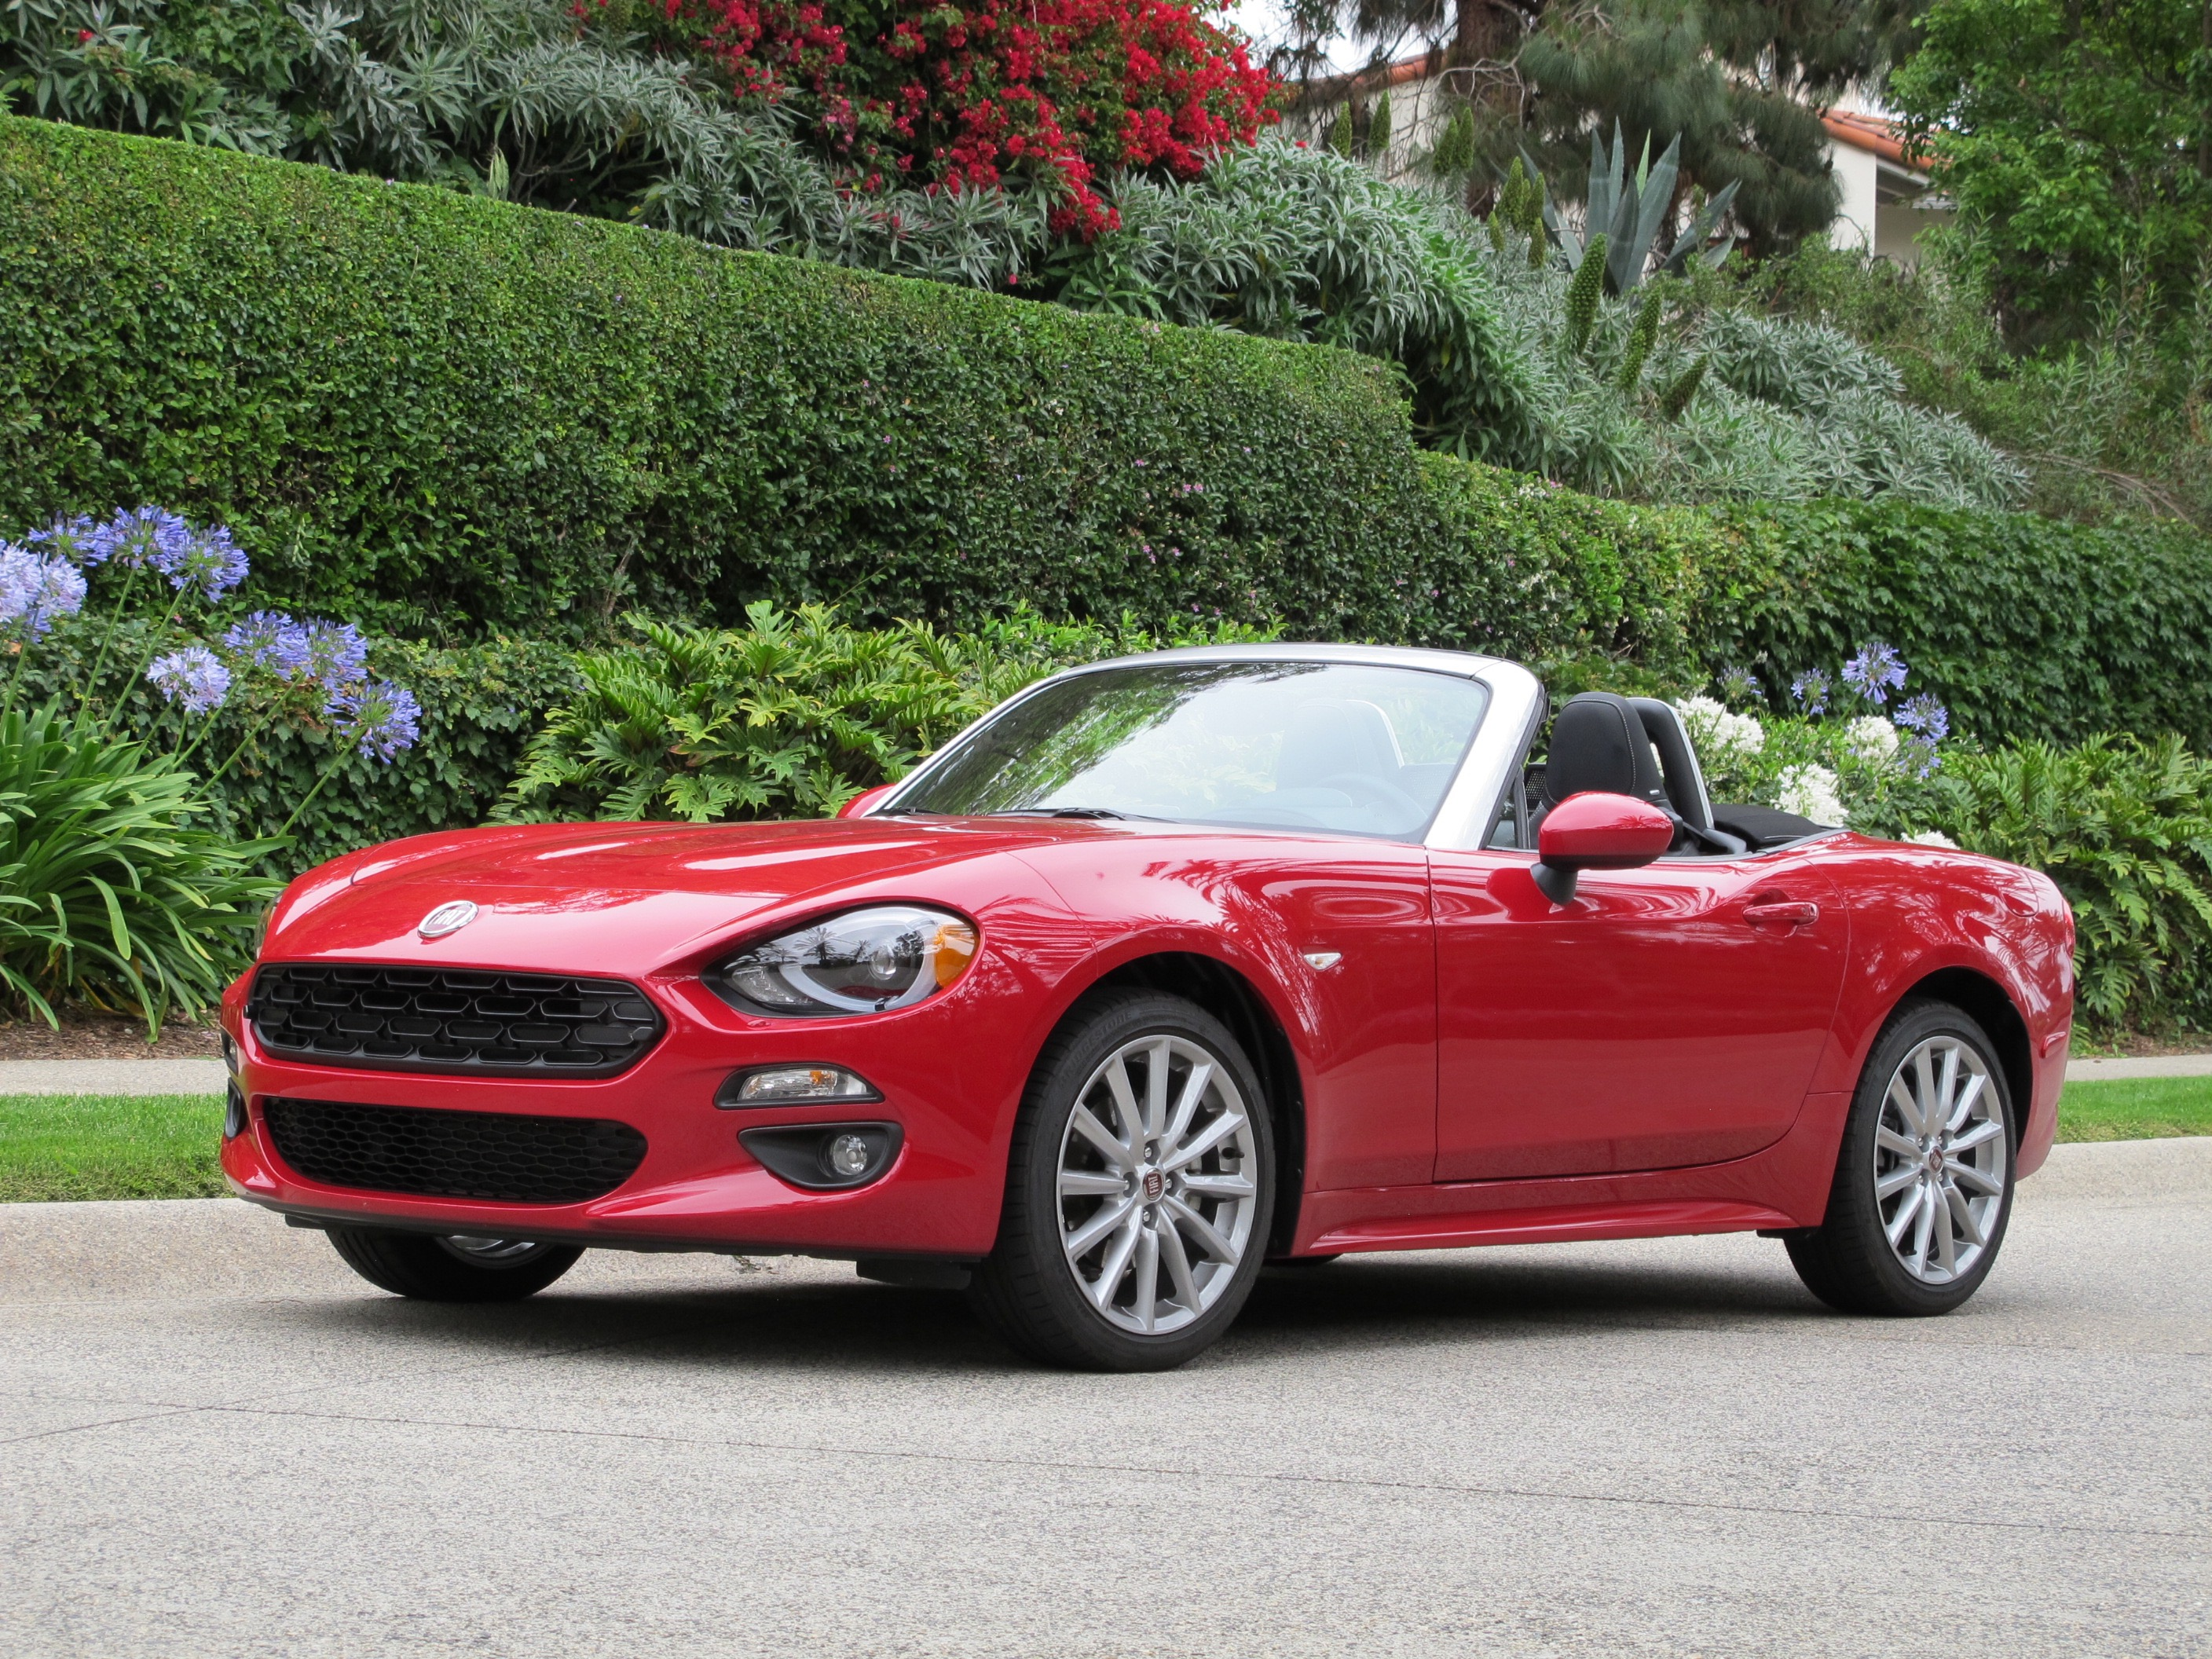 8 ways the fiat 124 spider differs from the mazda miata for Fiat 124 spider motor